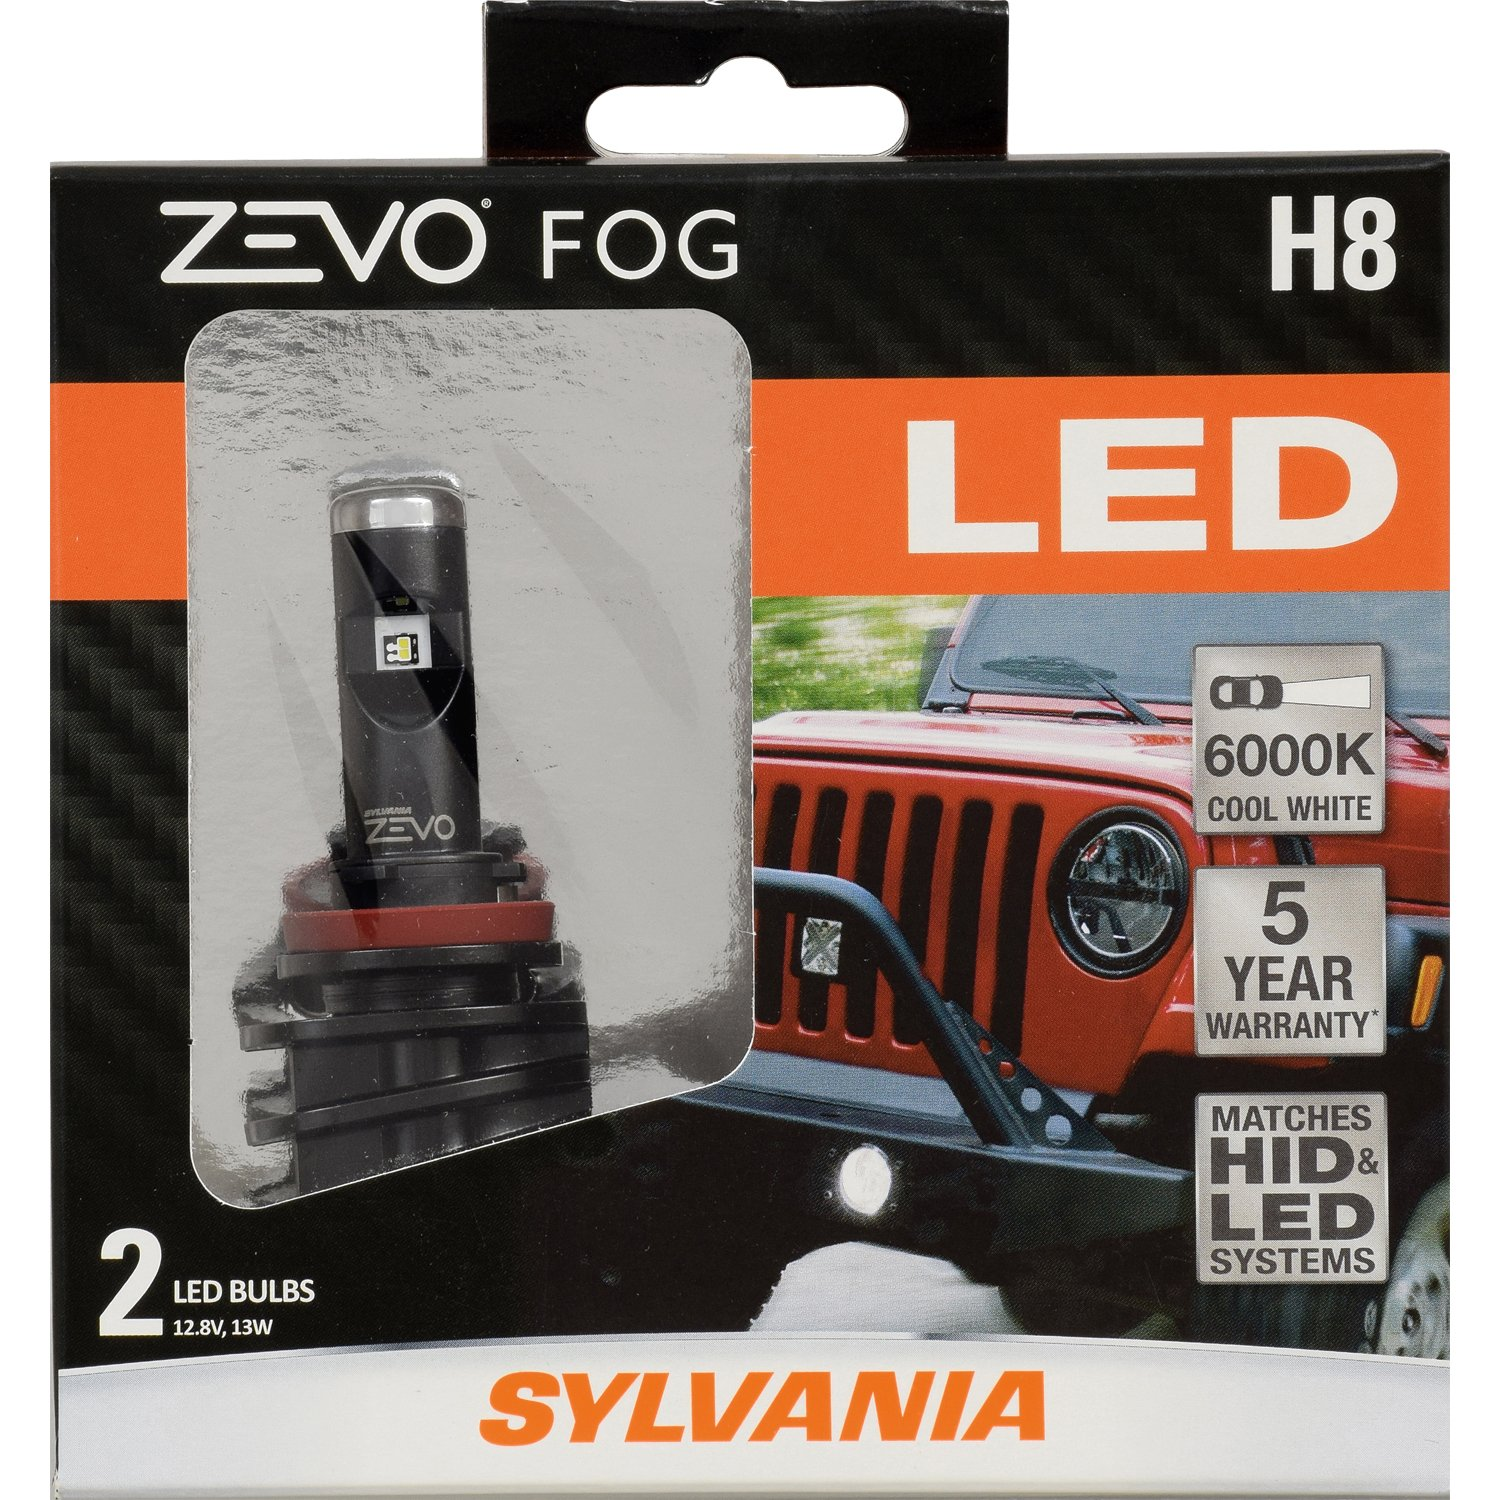 SYLVANIA - H8 ZEVO FOG LED - Premium Quality Fog Lights, Bright White LED Light Output, Matches HID & LED Headlight Lighting Systems, Added Style & Performance (Contains 2 Bulbs)